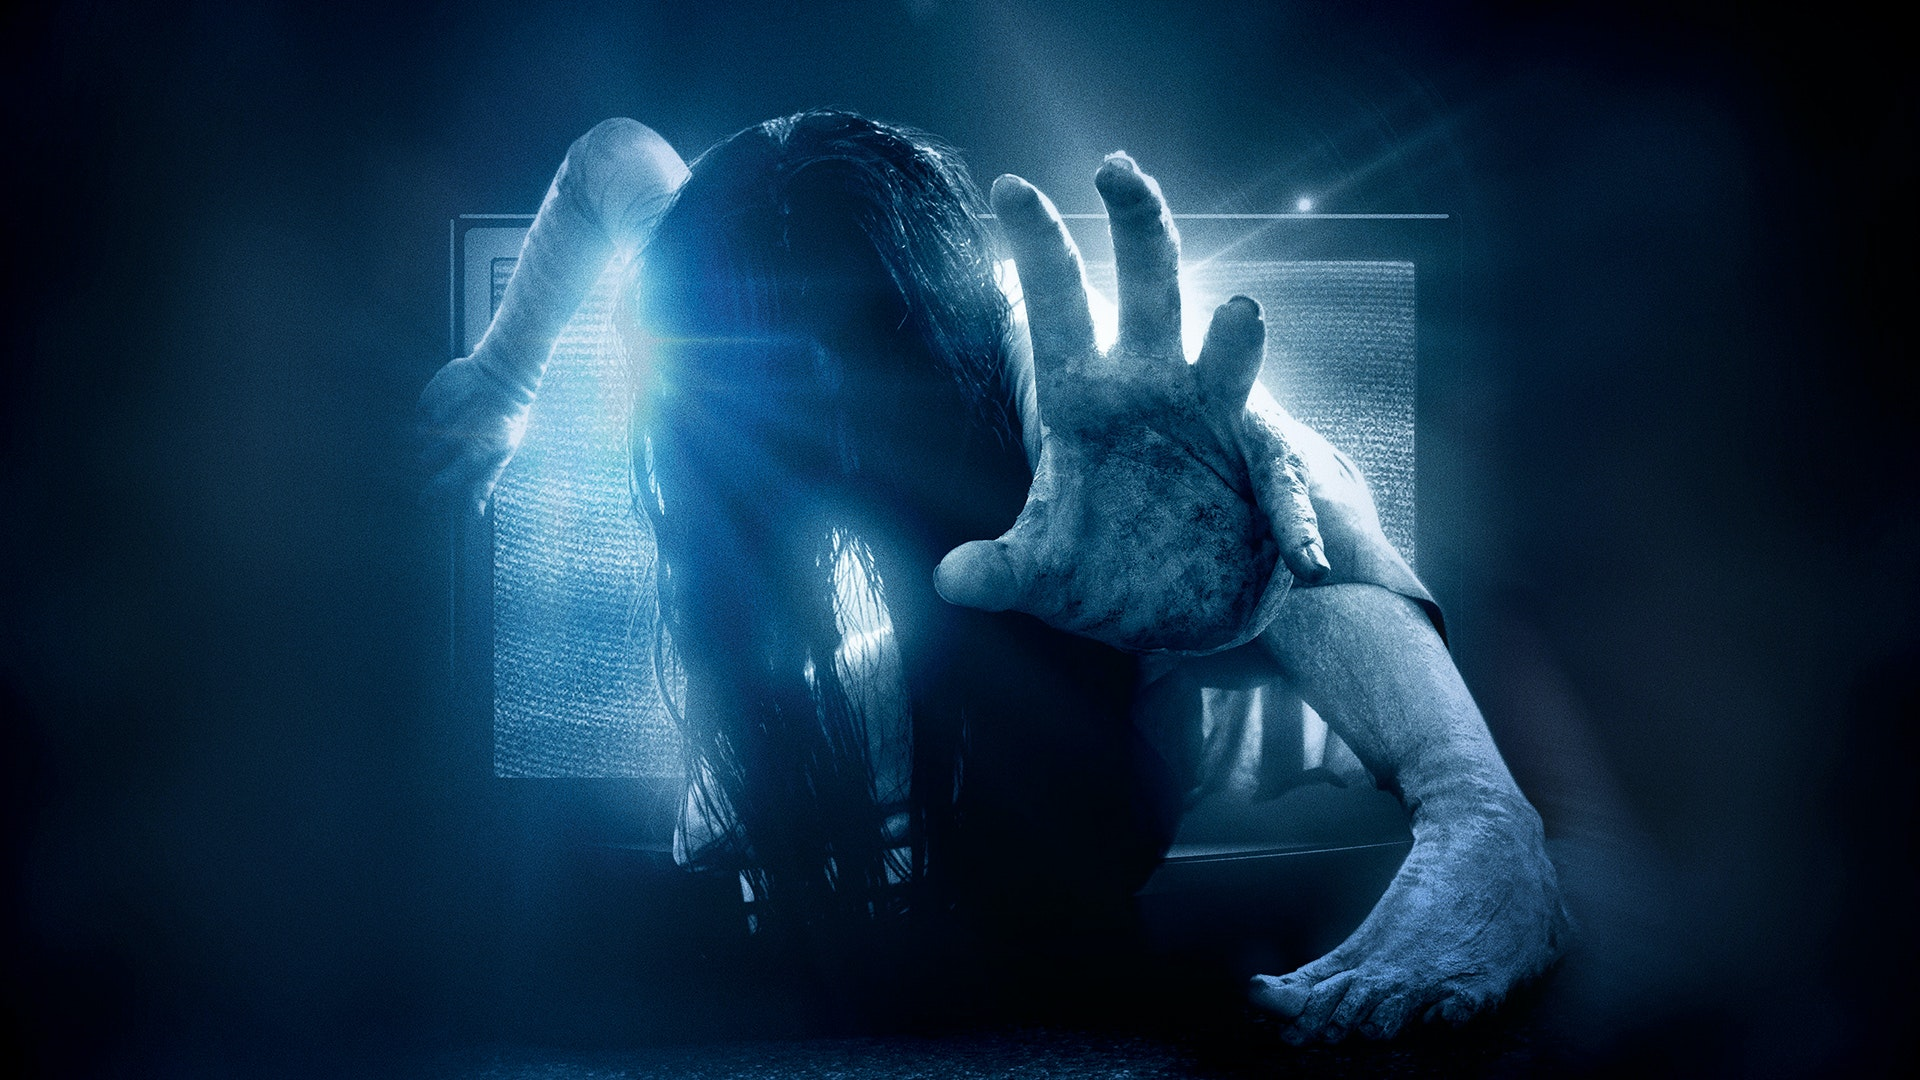 Rings (2017) Soundtrack